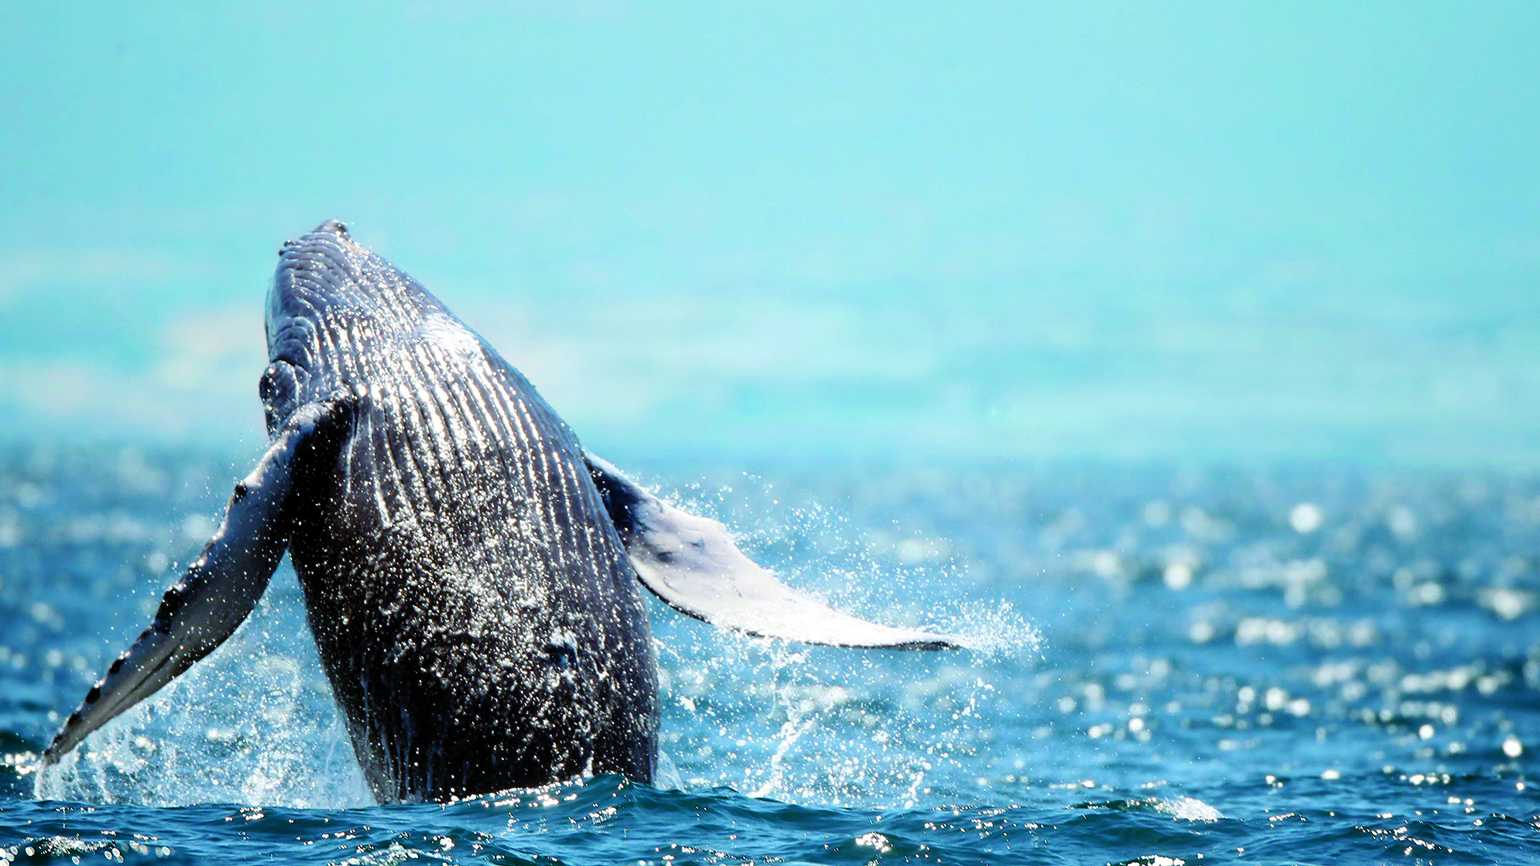 A majestic humpback whale breaching in the blue waters of the ocean.